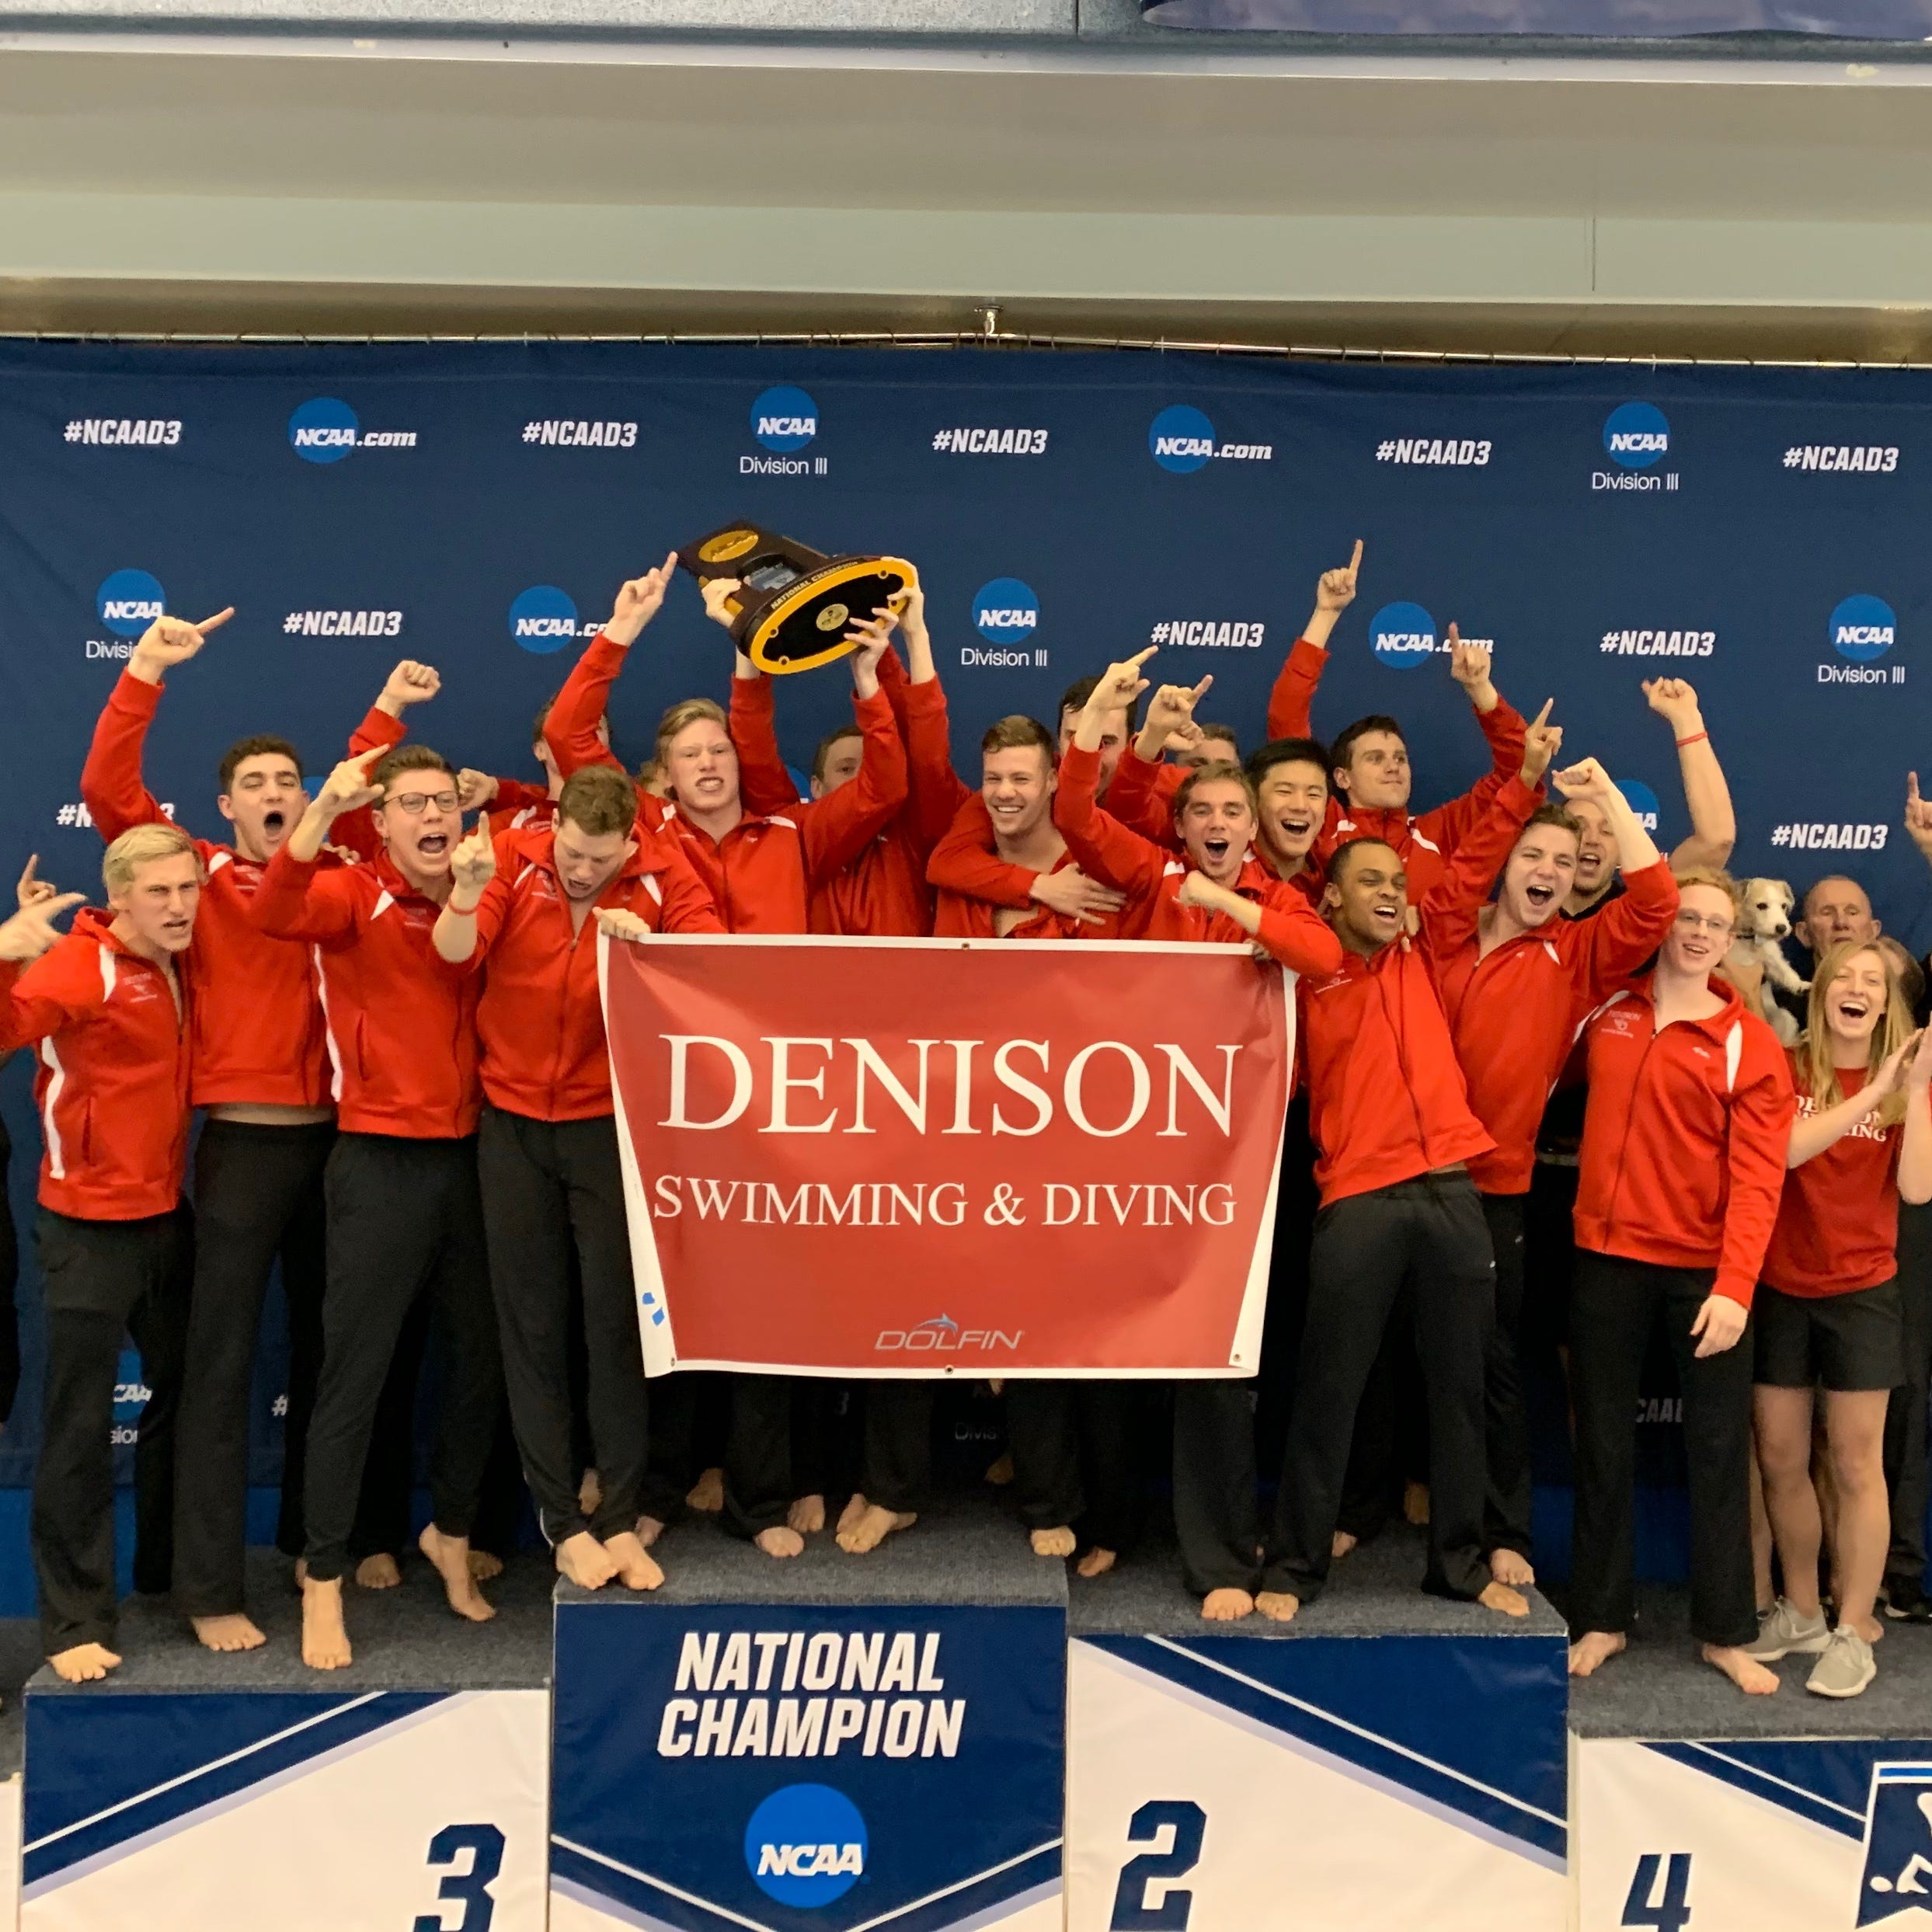 Denison men's swim team repeats as NCAA champion